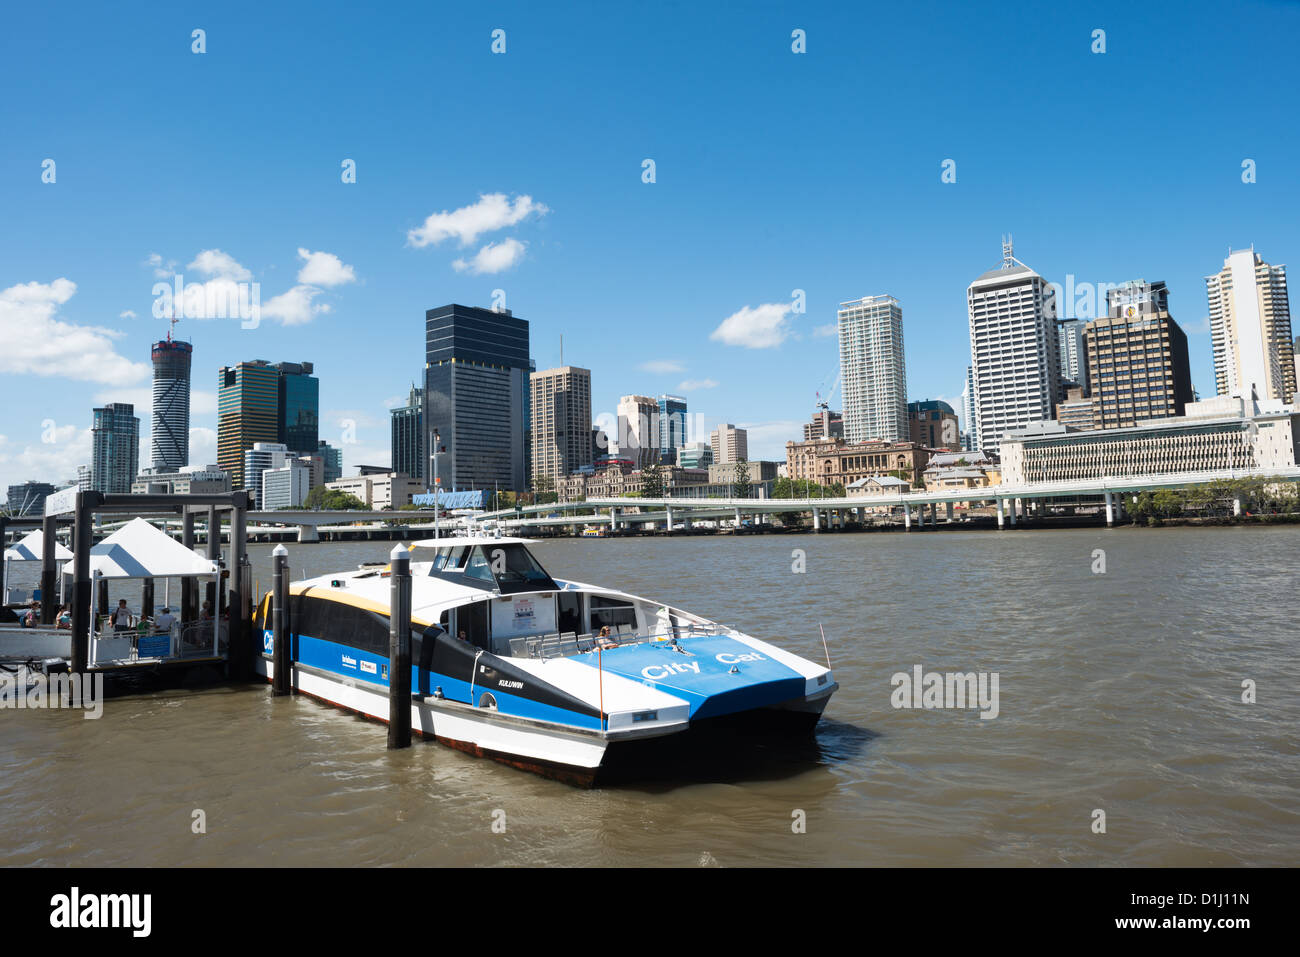 BRISBANE, Australia - A Citycat ferry pulled up to a ferry terminal at South Bank, with the Brisbane city skyline Stock Photo